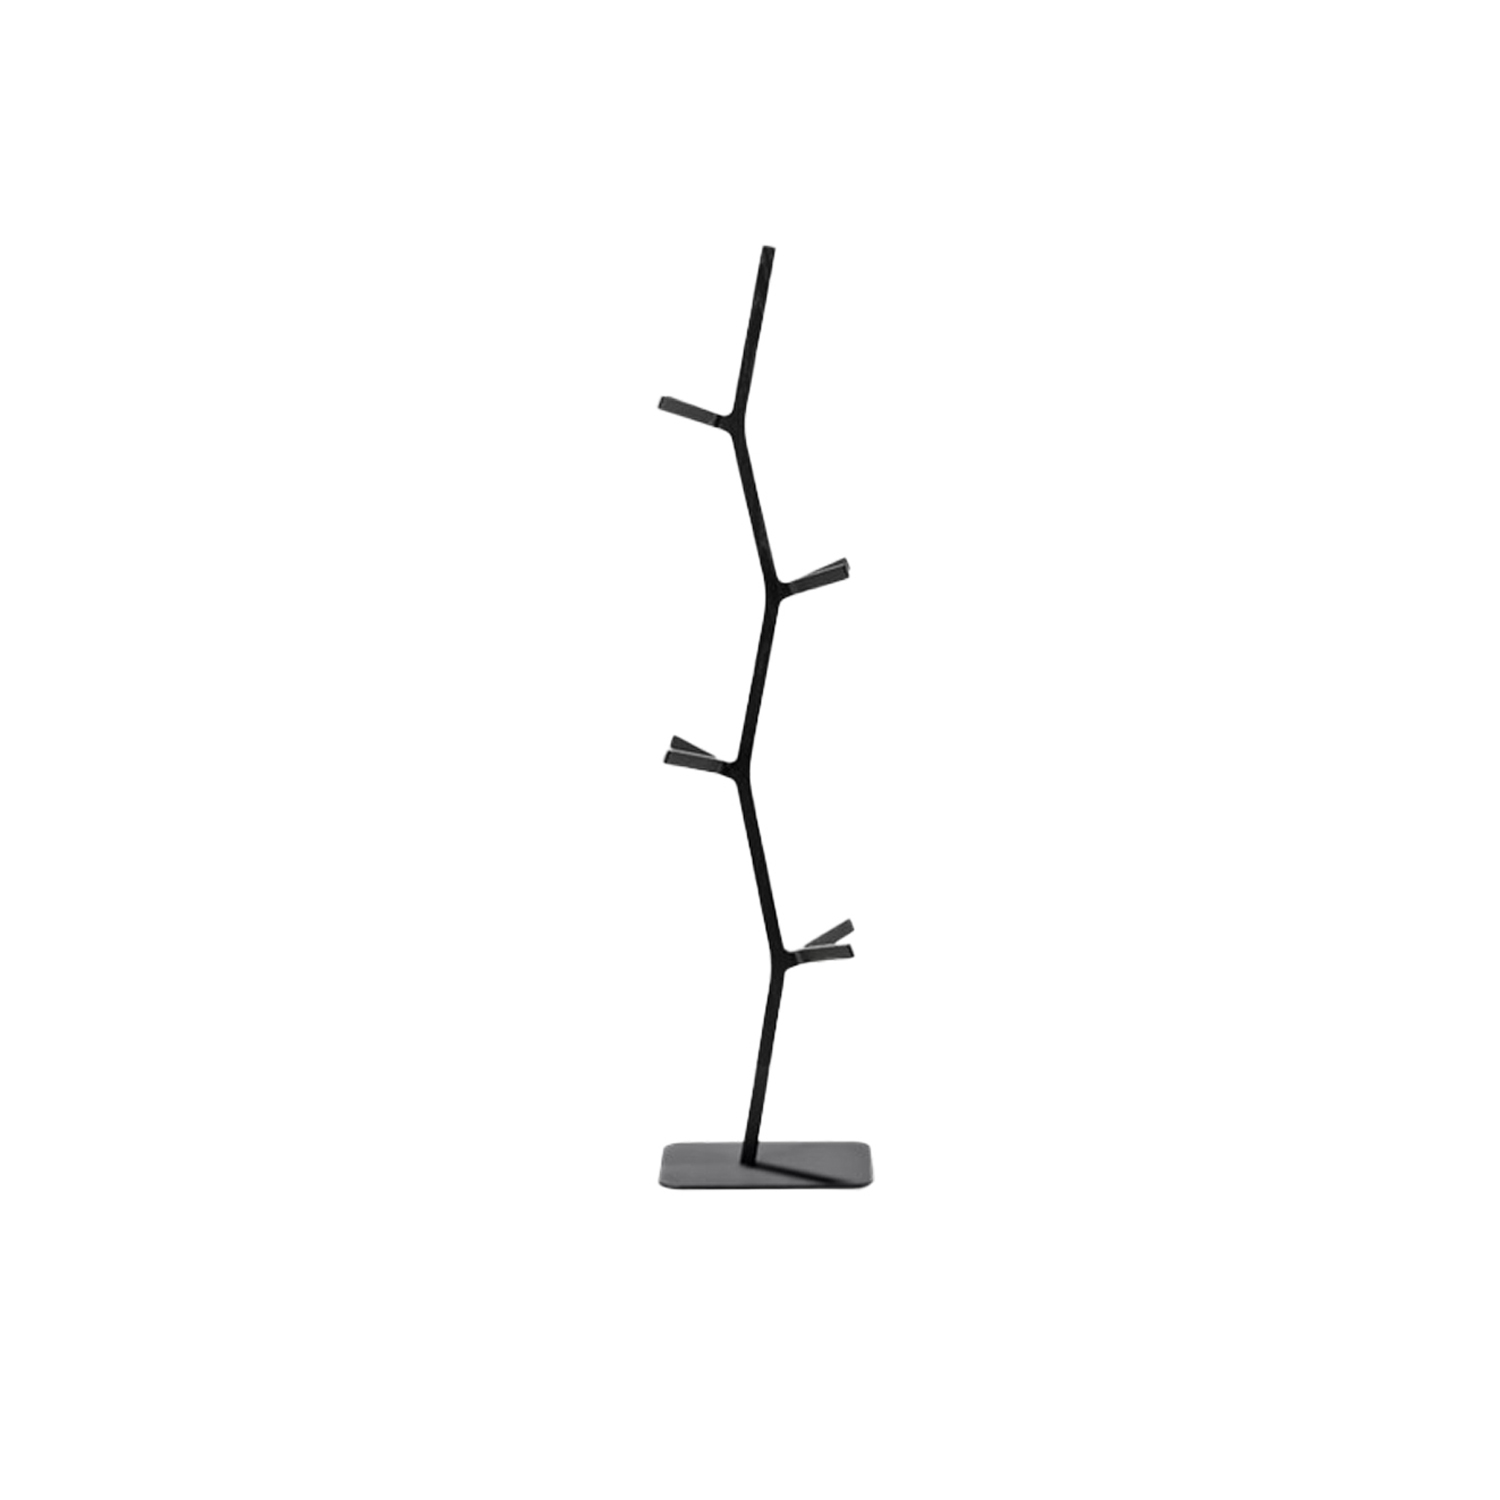 Nara Coat Stand - Nara Coat stand was designed by Shin Azumi as a way to utilise the off cuts from production of the Nara chair. The result is a sculptural object with a graphical silhouette.  Although many of our sofas and lounge chairs comprise our most celebrated designs, we have smaller pieces that are distinctive, well-crafted, modern originals in their own right. Pieces that add a touch of personality and practicality. A sense of cosiness. As punctuations to a style statement. Or just the pieces you were looking for to create a sense of completeness. Because when it comes to interior décor, sometimes the smallest detail can make the biggest difference. | Matter of Stuff